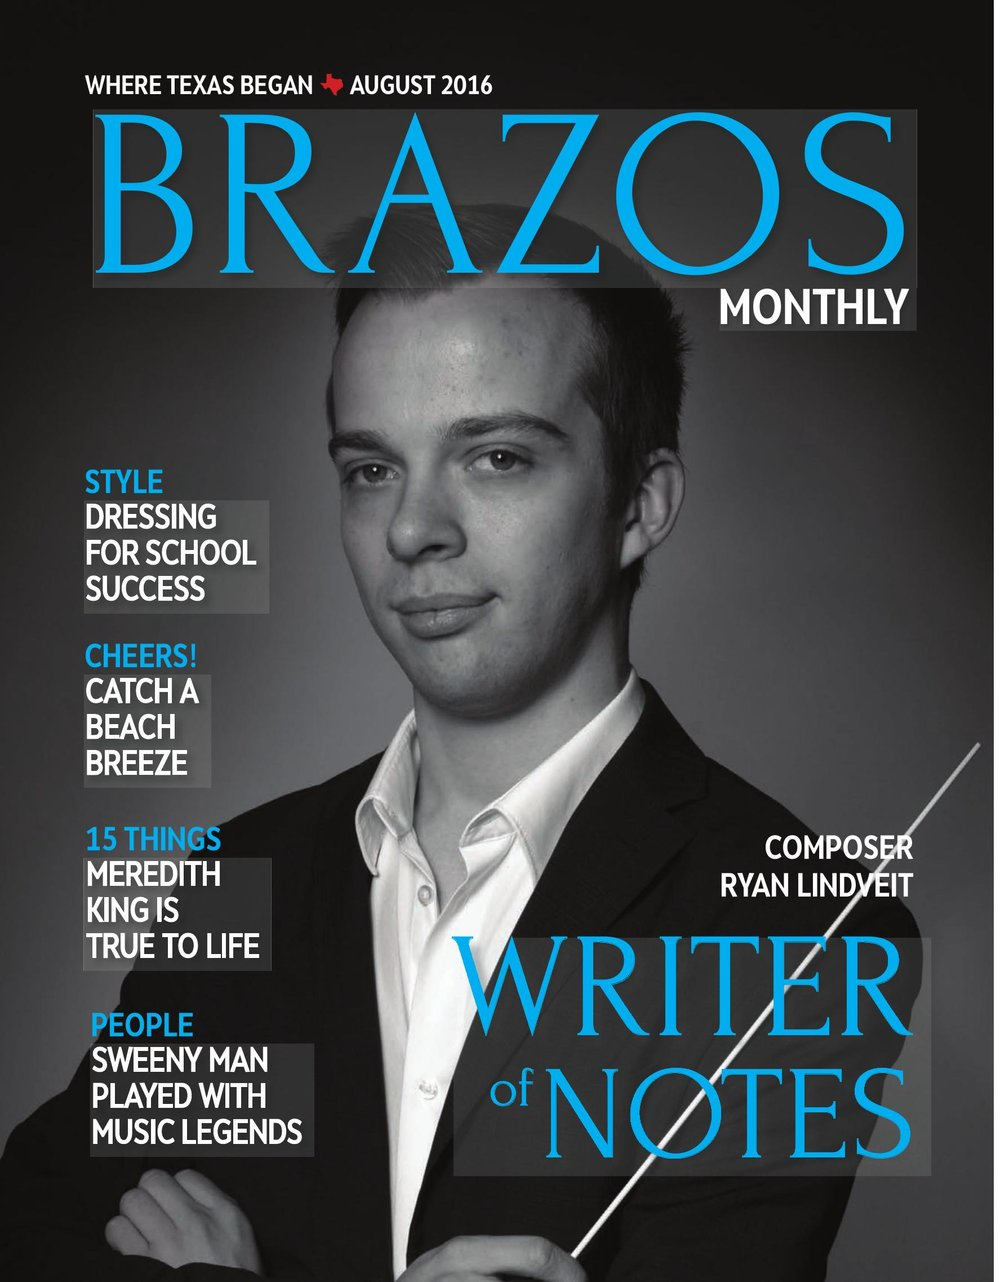 Brazos+Monthly+Cover.jpg